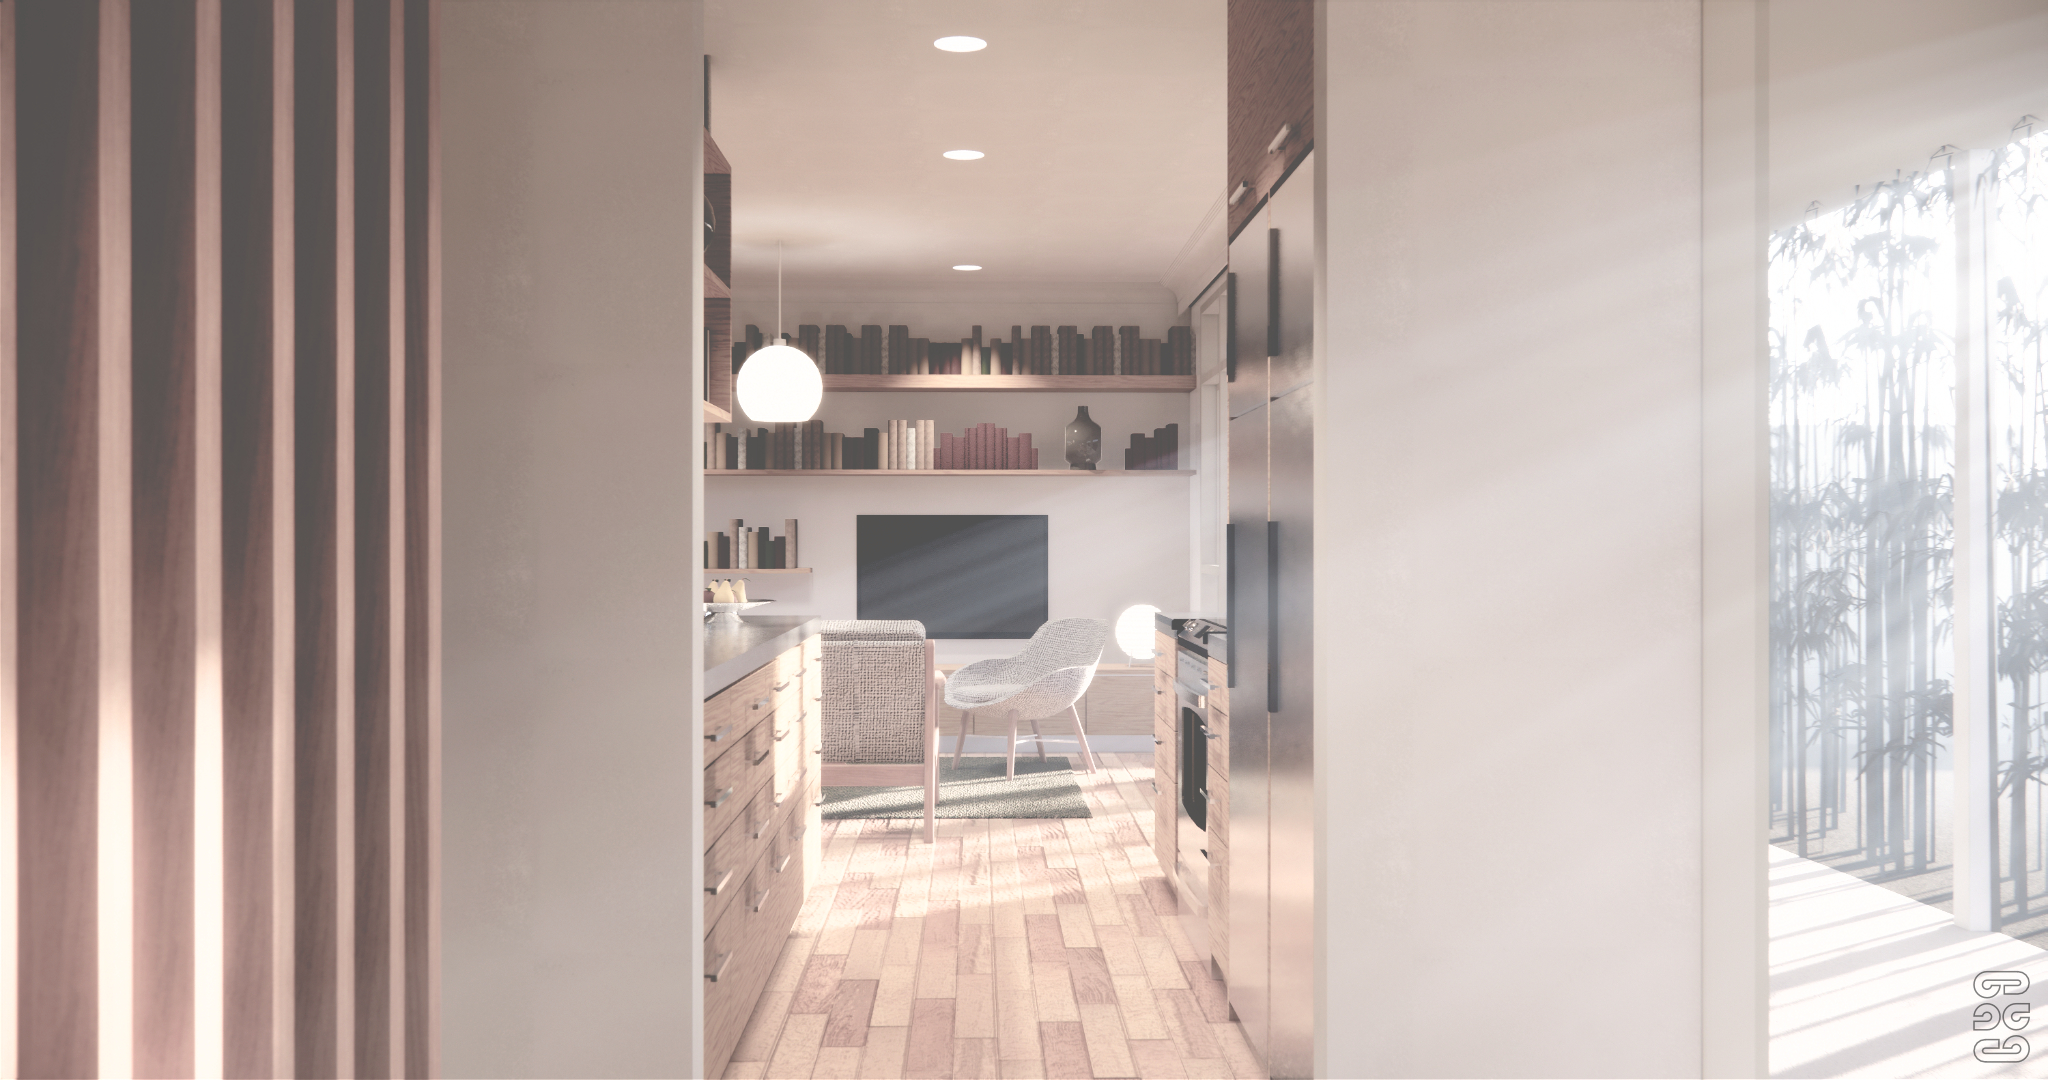 House Alterations - Hamilton, Interior Perspective